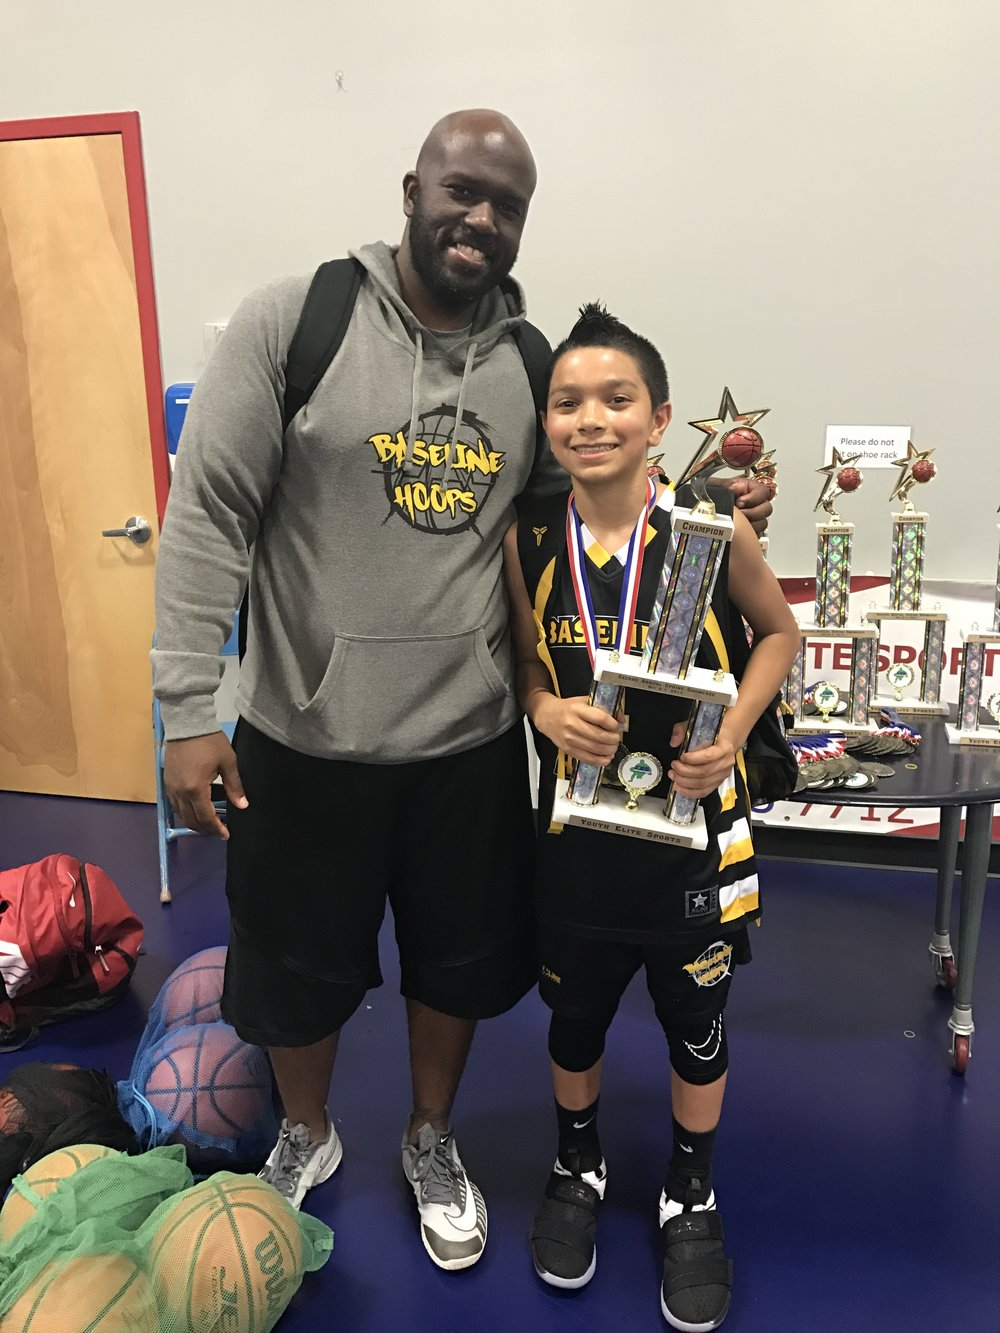 program director - head trainer - coach - Marcus was a 3 year starter and 2 time captain at Cherry Hill East High School ('97-'00). His senior year he was an all state performer. Marcus scored 1200 points in his career while playing under the legendary coach John Valore. Marcus continued his basketball career at Division 1 University of New Hampshire where he was a 4 year starter at the point guard position. He scored over 1000 points in his college career and holds the school record for 3 point field goals made in a career. Since graduating from UNH Marcus has trained many athletes including various professional athletes, from the NBA and overseas. He has trained many of the top high school players in the area. He was also the head trainer for the South Jersey champion Cherry Hill East and Camden High boys basketball teams.Favorite Basketball Player: Michael JordanFavorite Basketball Team: The Philadelphia 76ersMost Influential Coach to Marcus: John Valore, High School CoachFavorite part about coaching: Building relationships with players, and watching them grow right in front of you.Training Specialty: Values teaching over yelling, Scoring specialist.